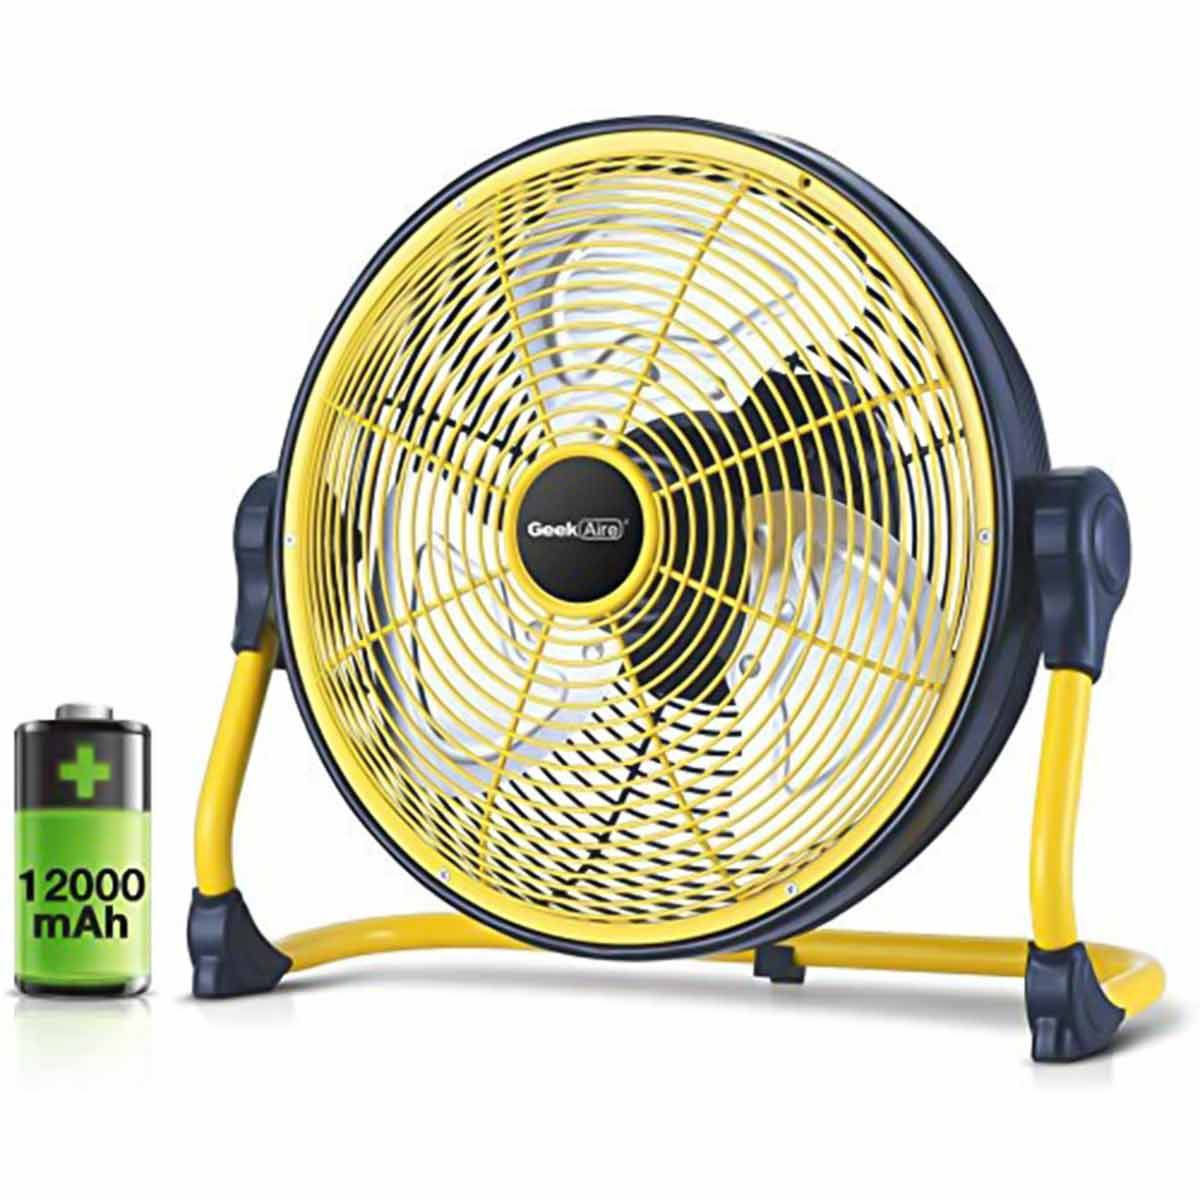 Geek Aire Rechargeable Table Fan - 12 Inch - CF1SE (Yellow Black)